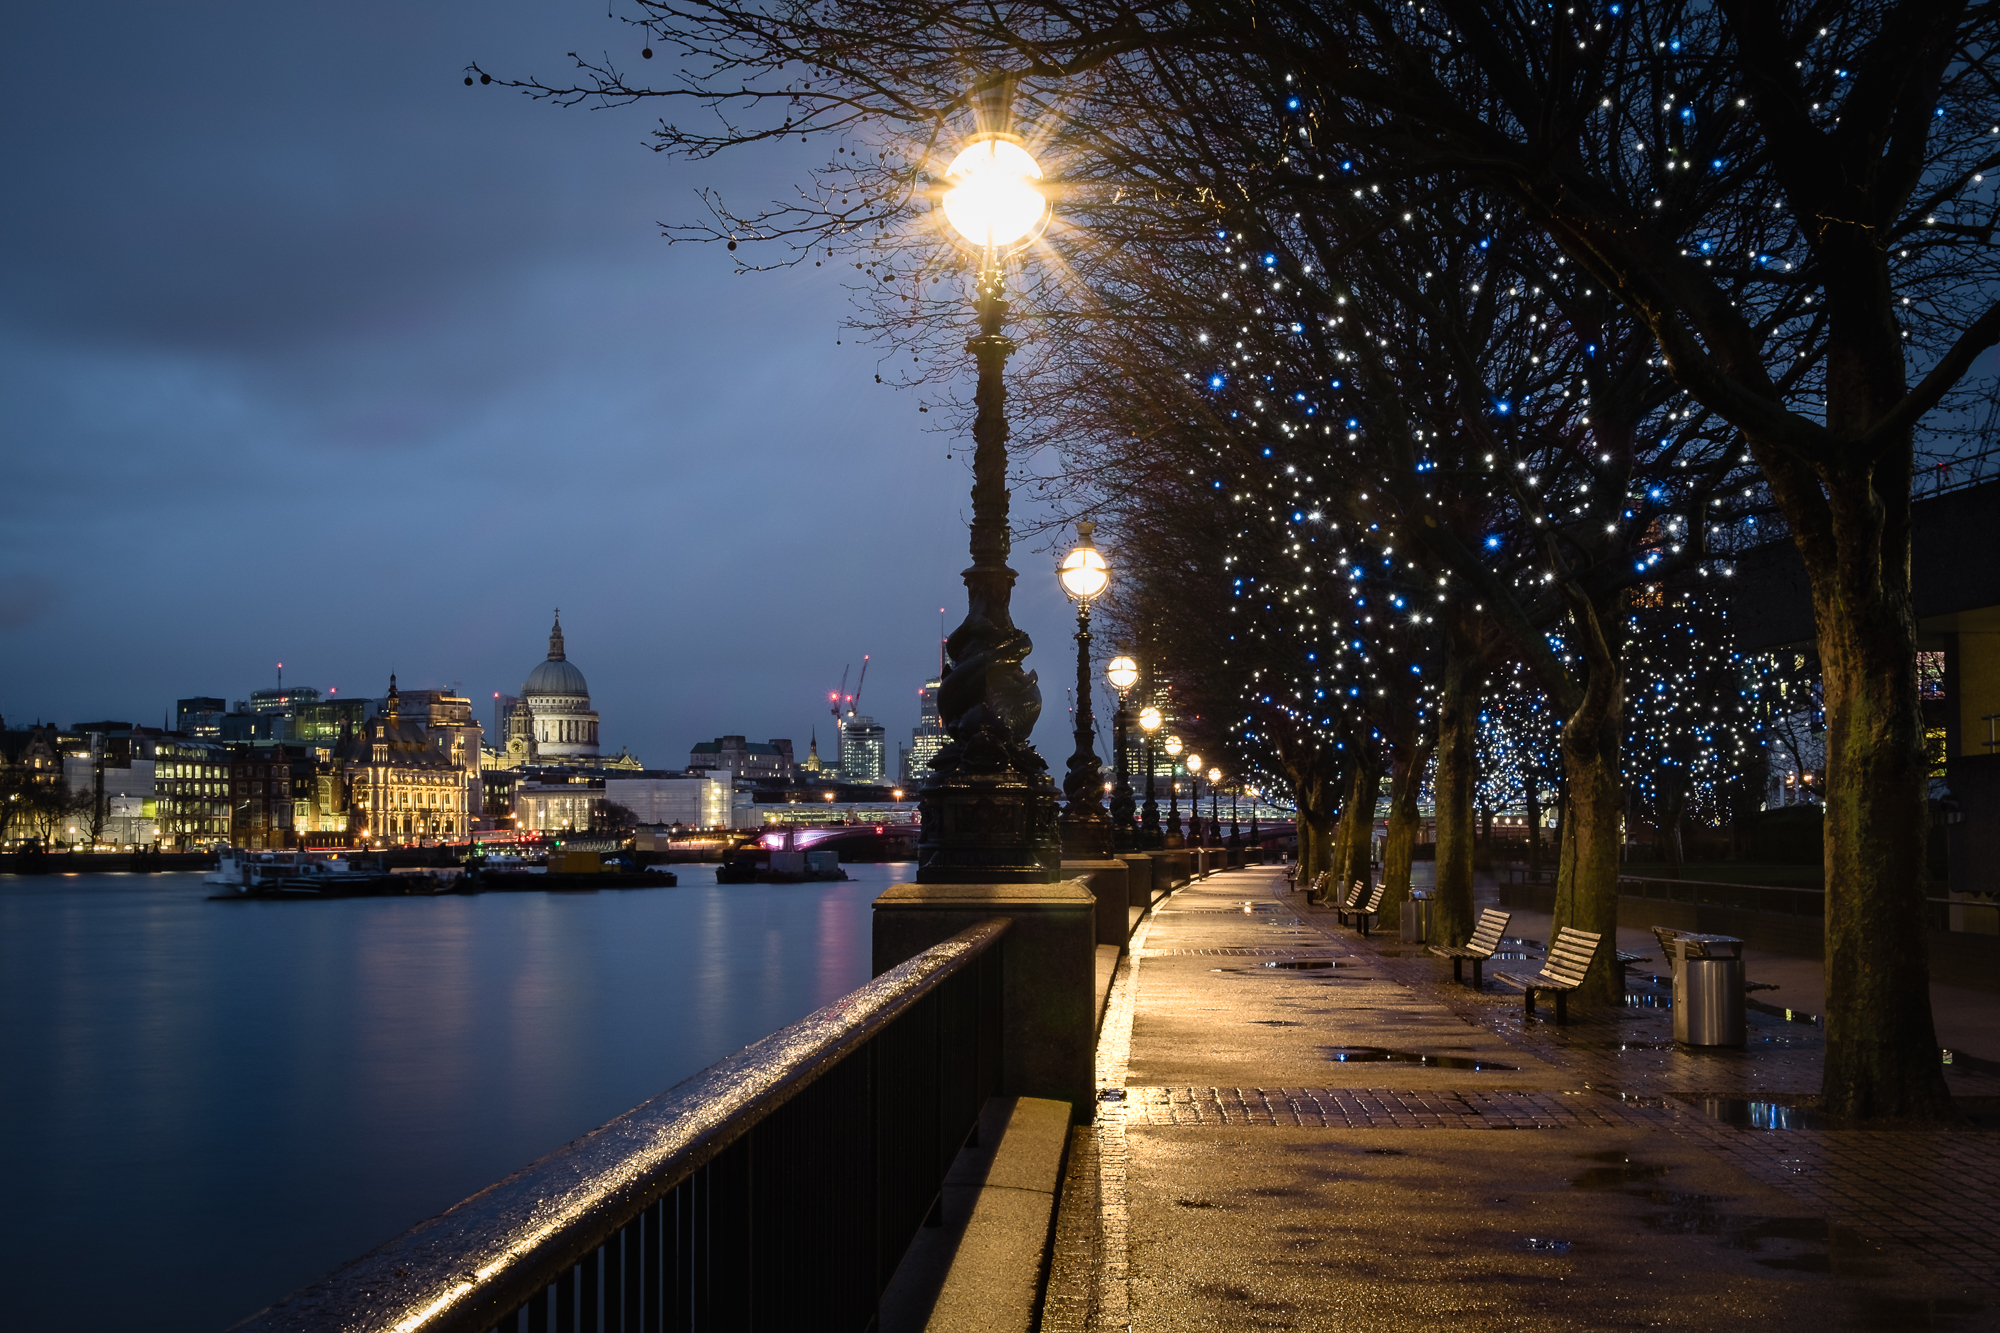 Cityscape photo of the South Bank and St Pauls, London by Trevor Sherwin